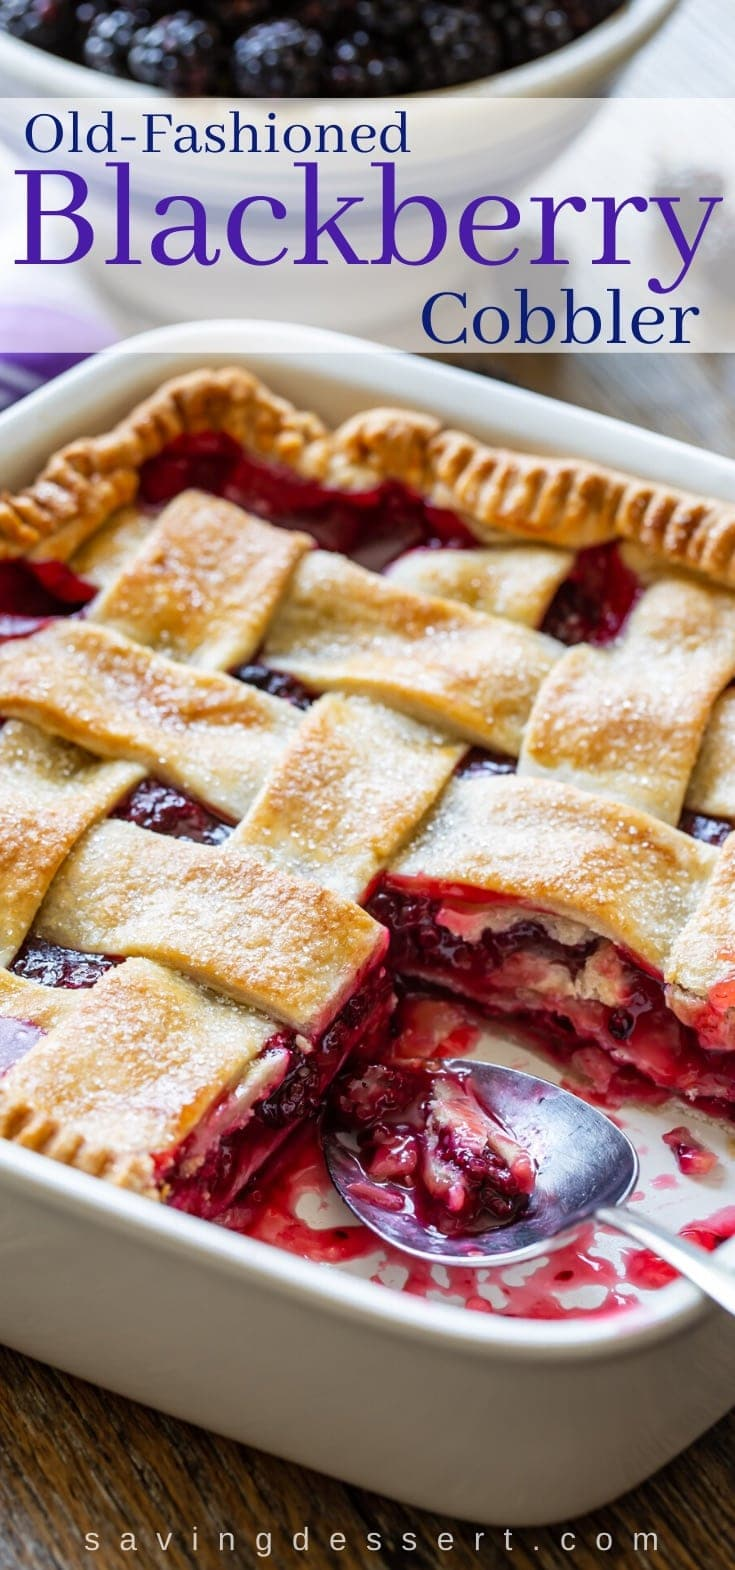 An old-fashioned blackberry cobbler with a pastry lattice crust